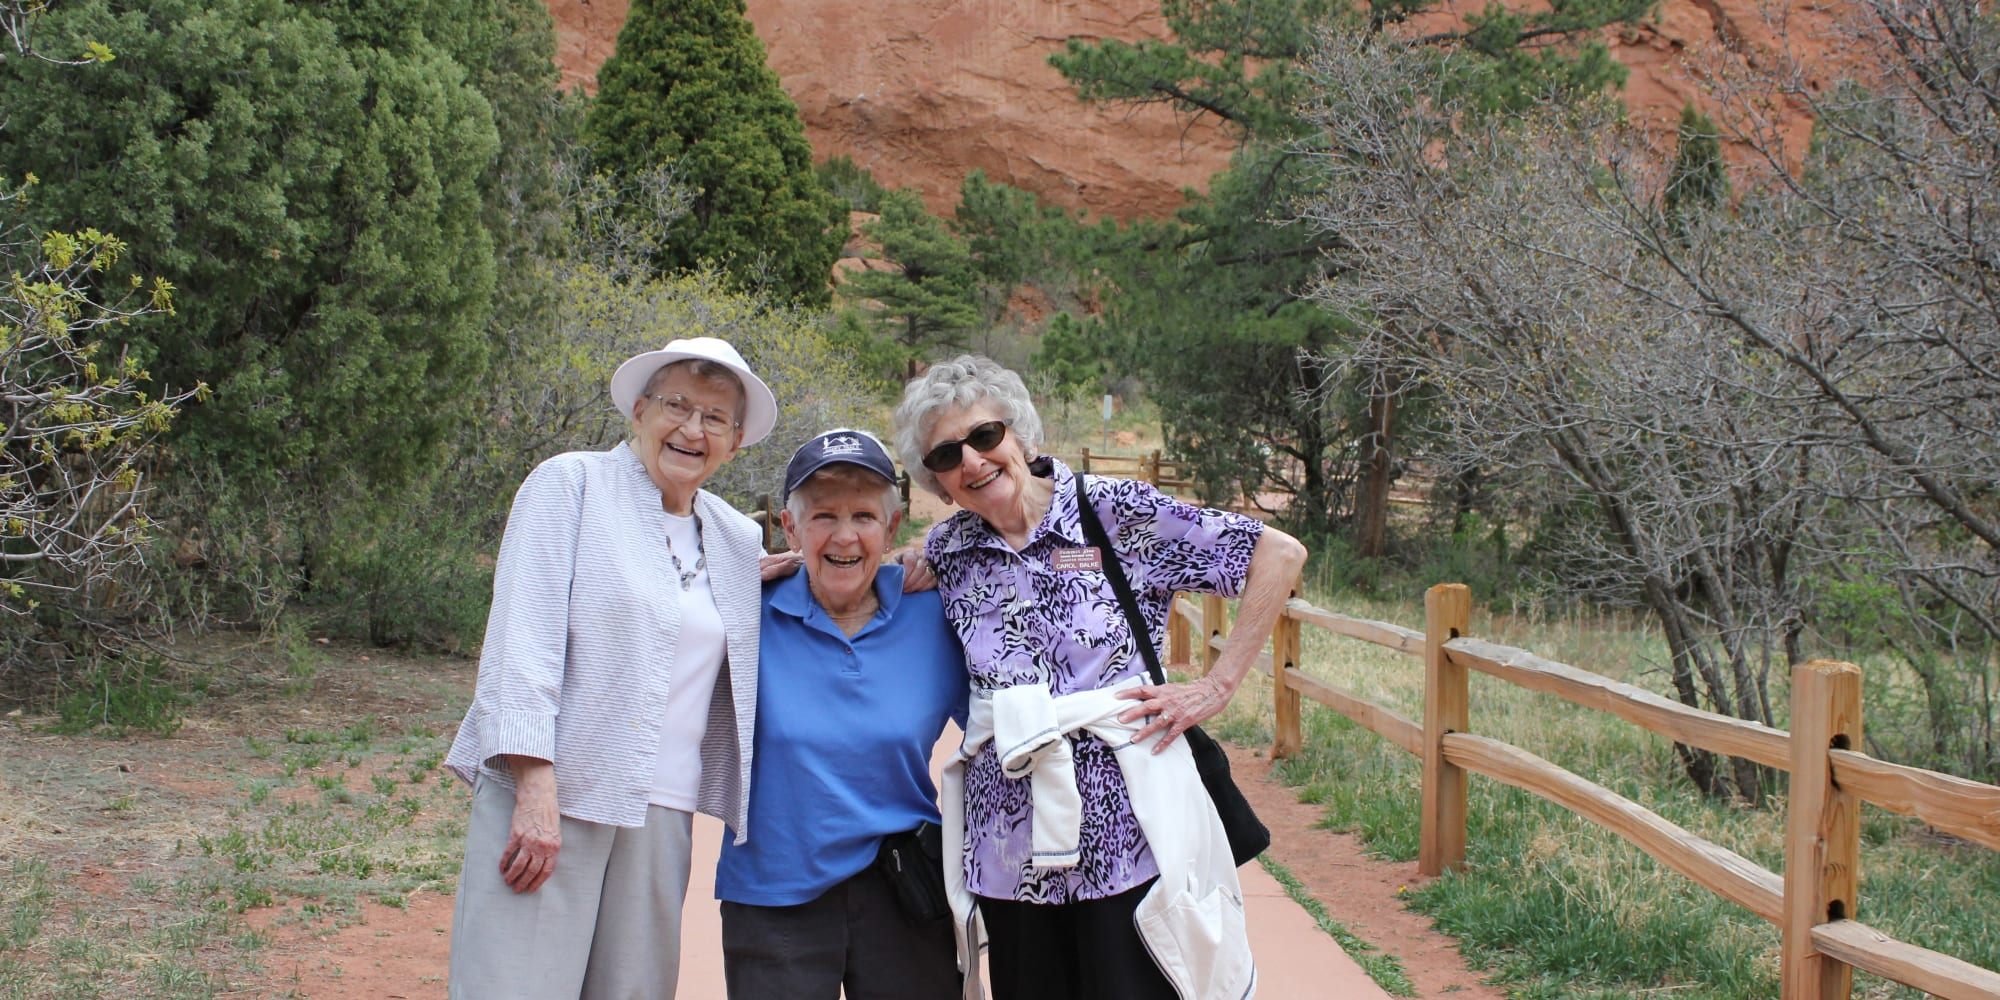 Three residents from Summit Glen in Colorado Springs, Colorado going for a hike